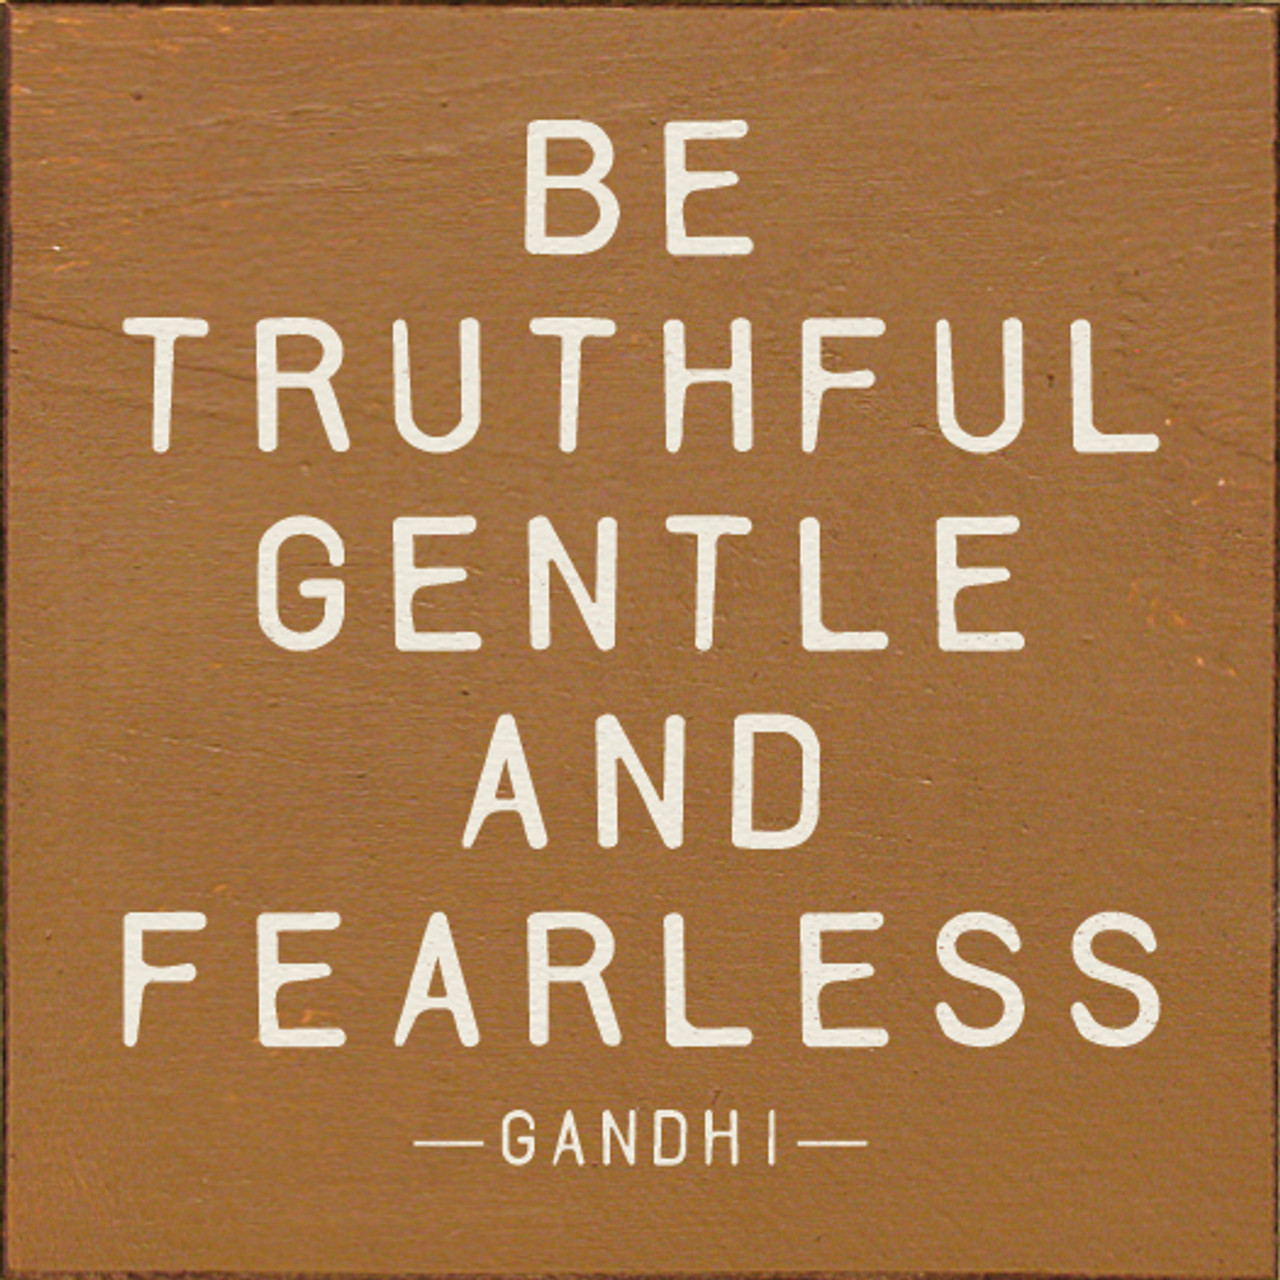 Be Truthful Gentle And Fearless Gandhi Wood Sign Country